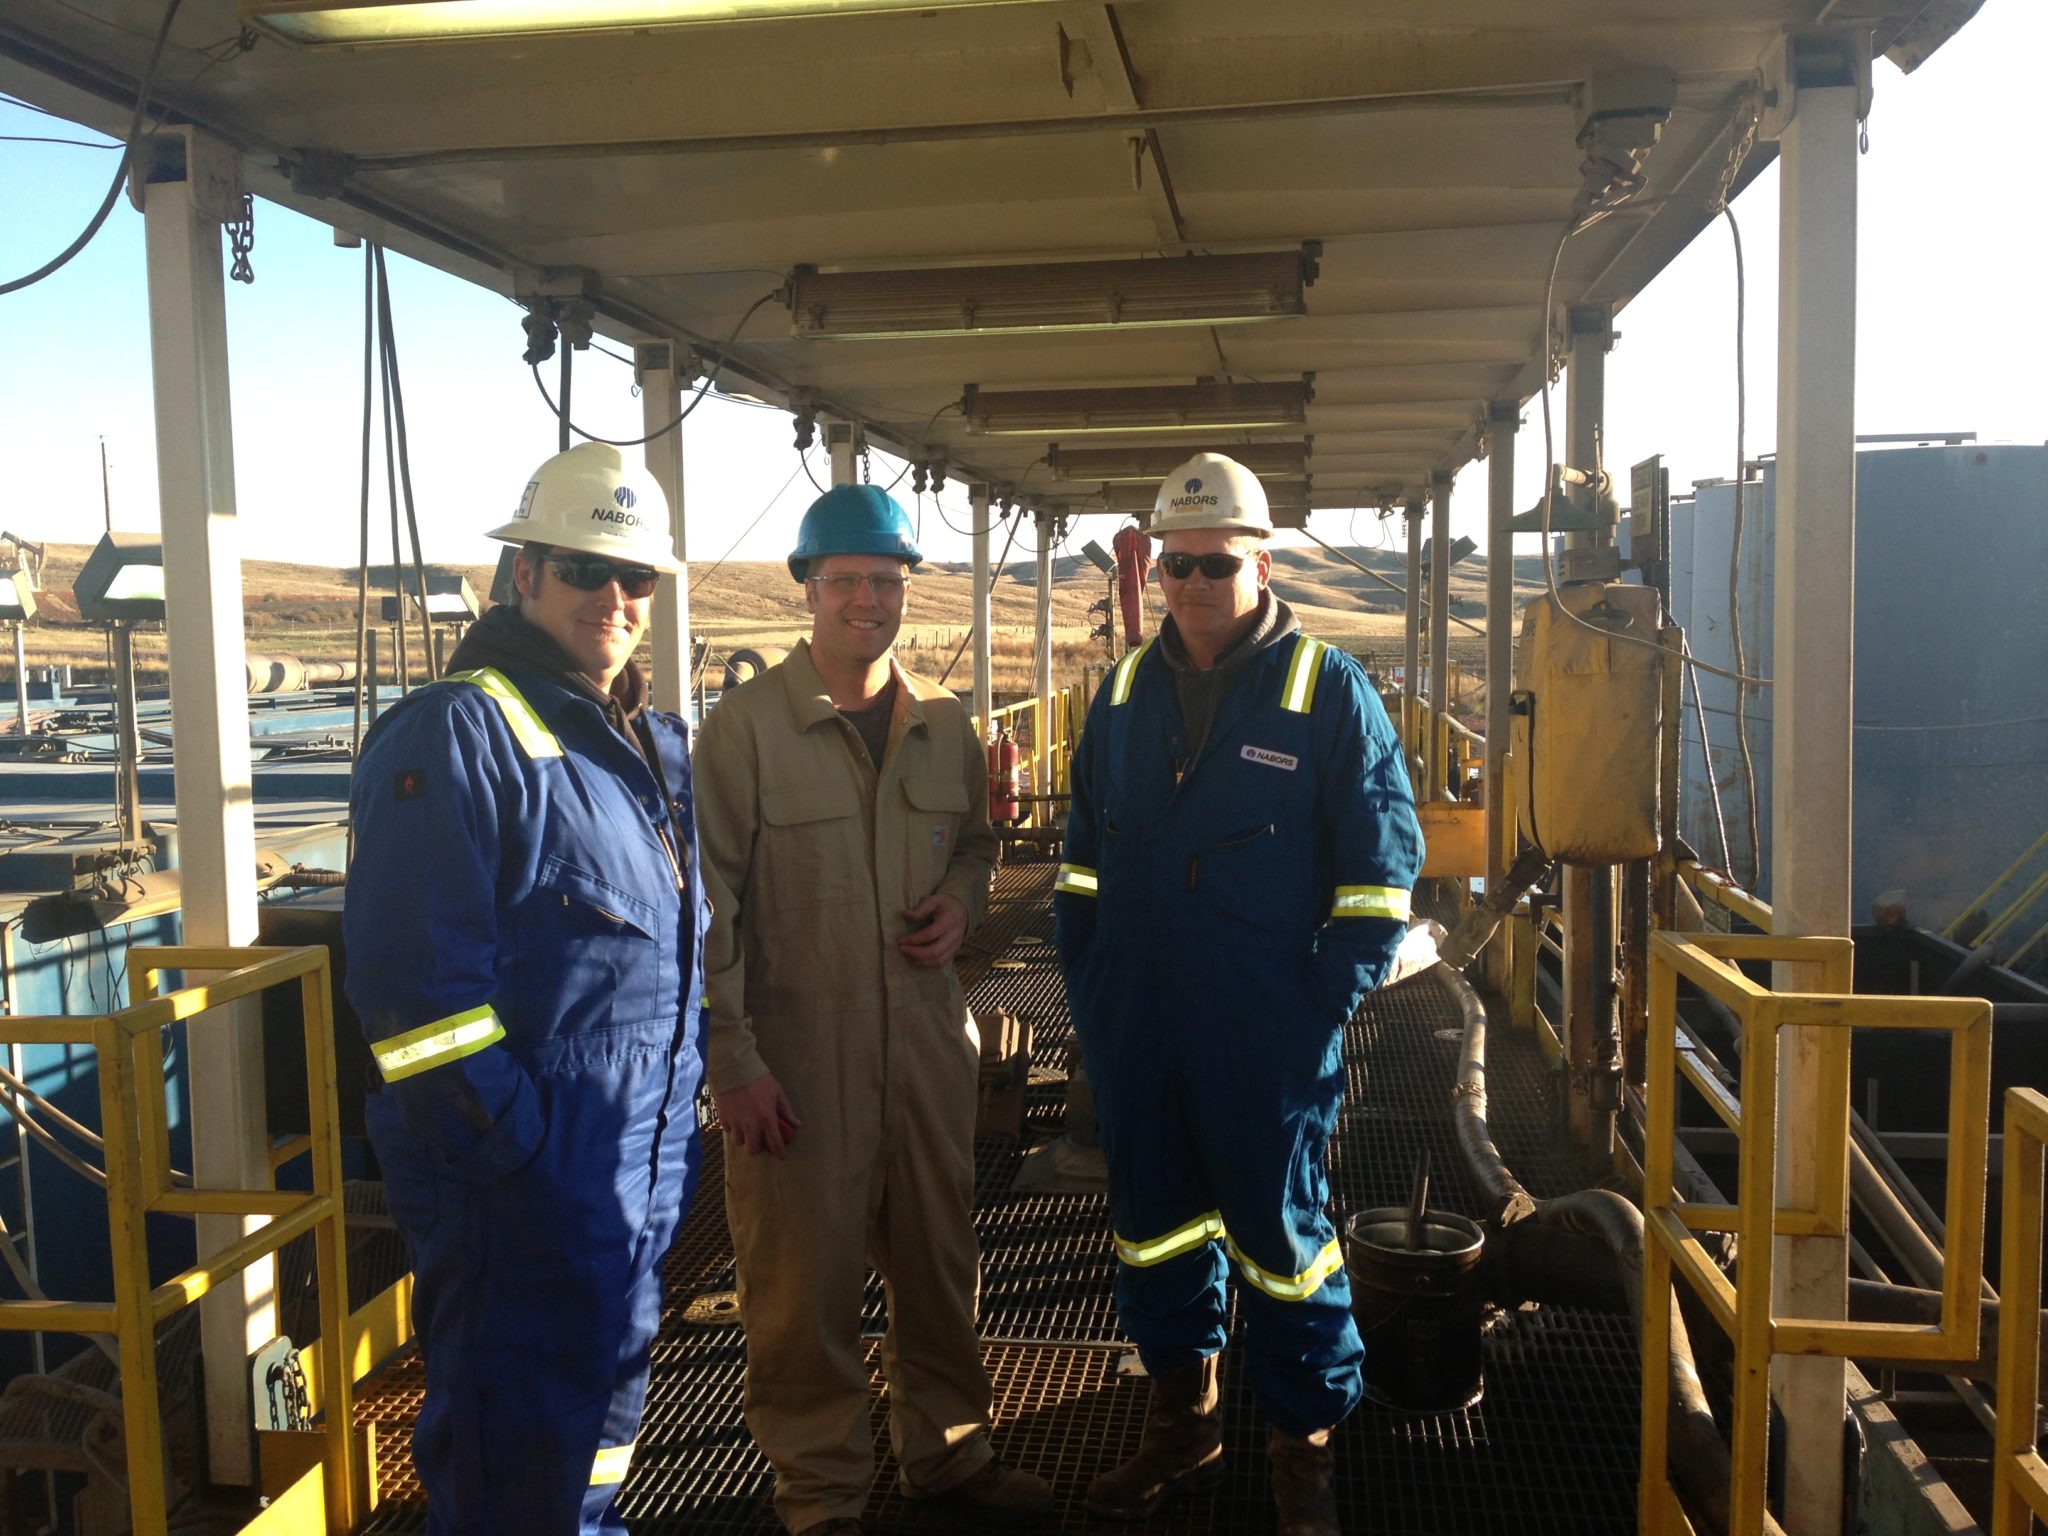 Agassiz Chemical's Steve Hareland (middle) poses with Nabor's Tyson Olsen (left), rig manager, and Greg Burquist (right), drill superintendent, on a Nabor's well pad